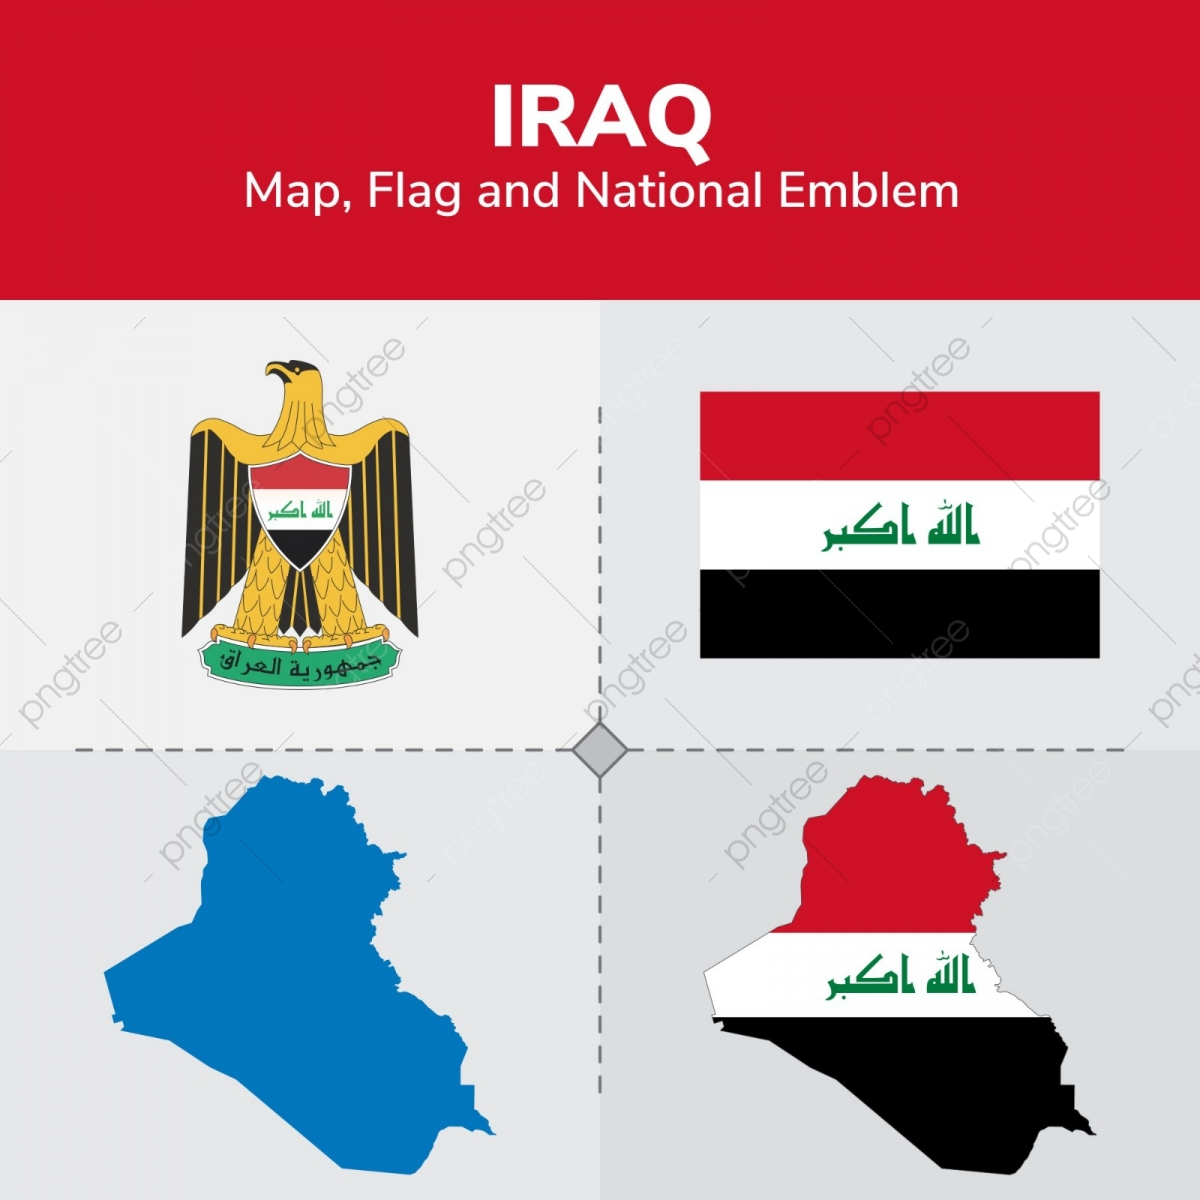 Iraq Png Images Vector And Psd Files Free Download On Pngtree